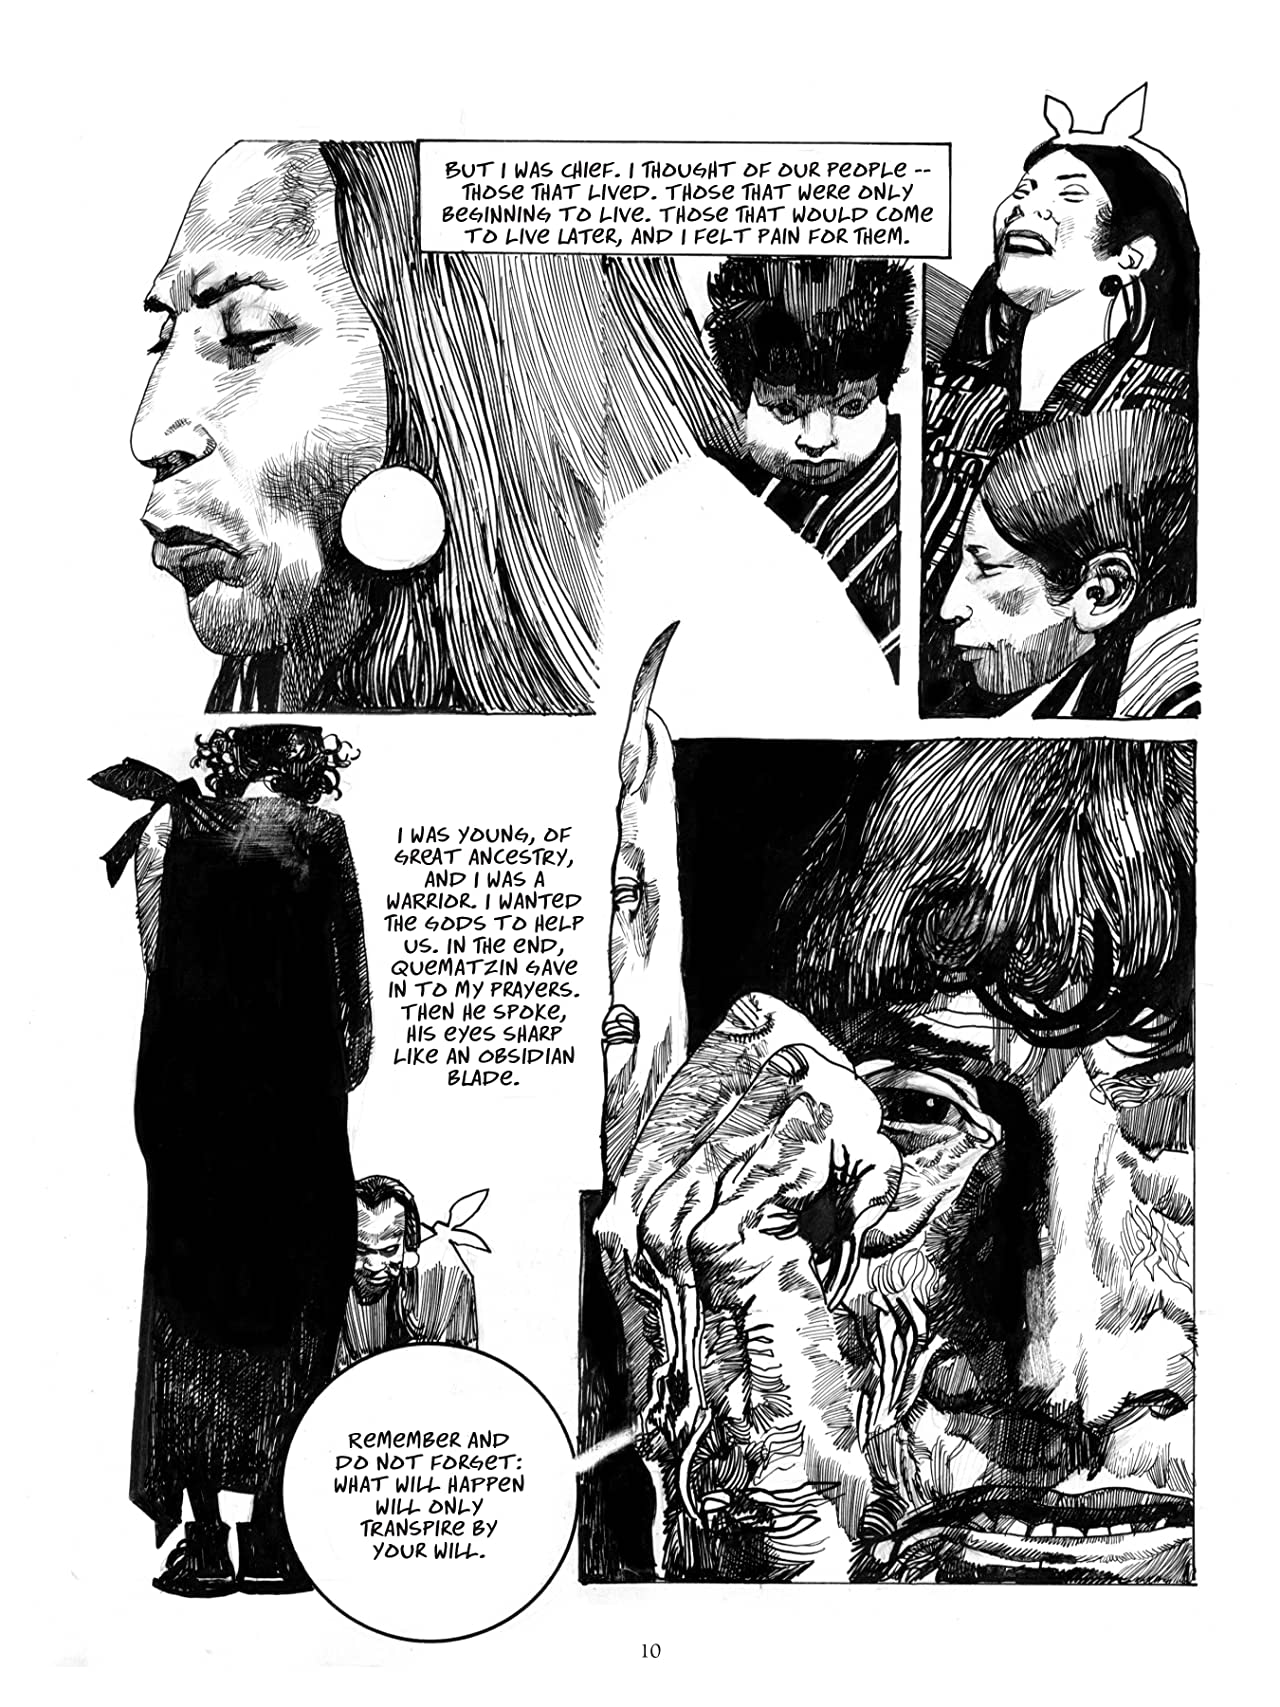 The Collected Toppi Vol. 3: South America